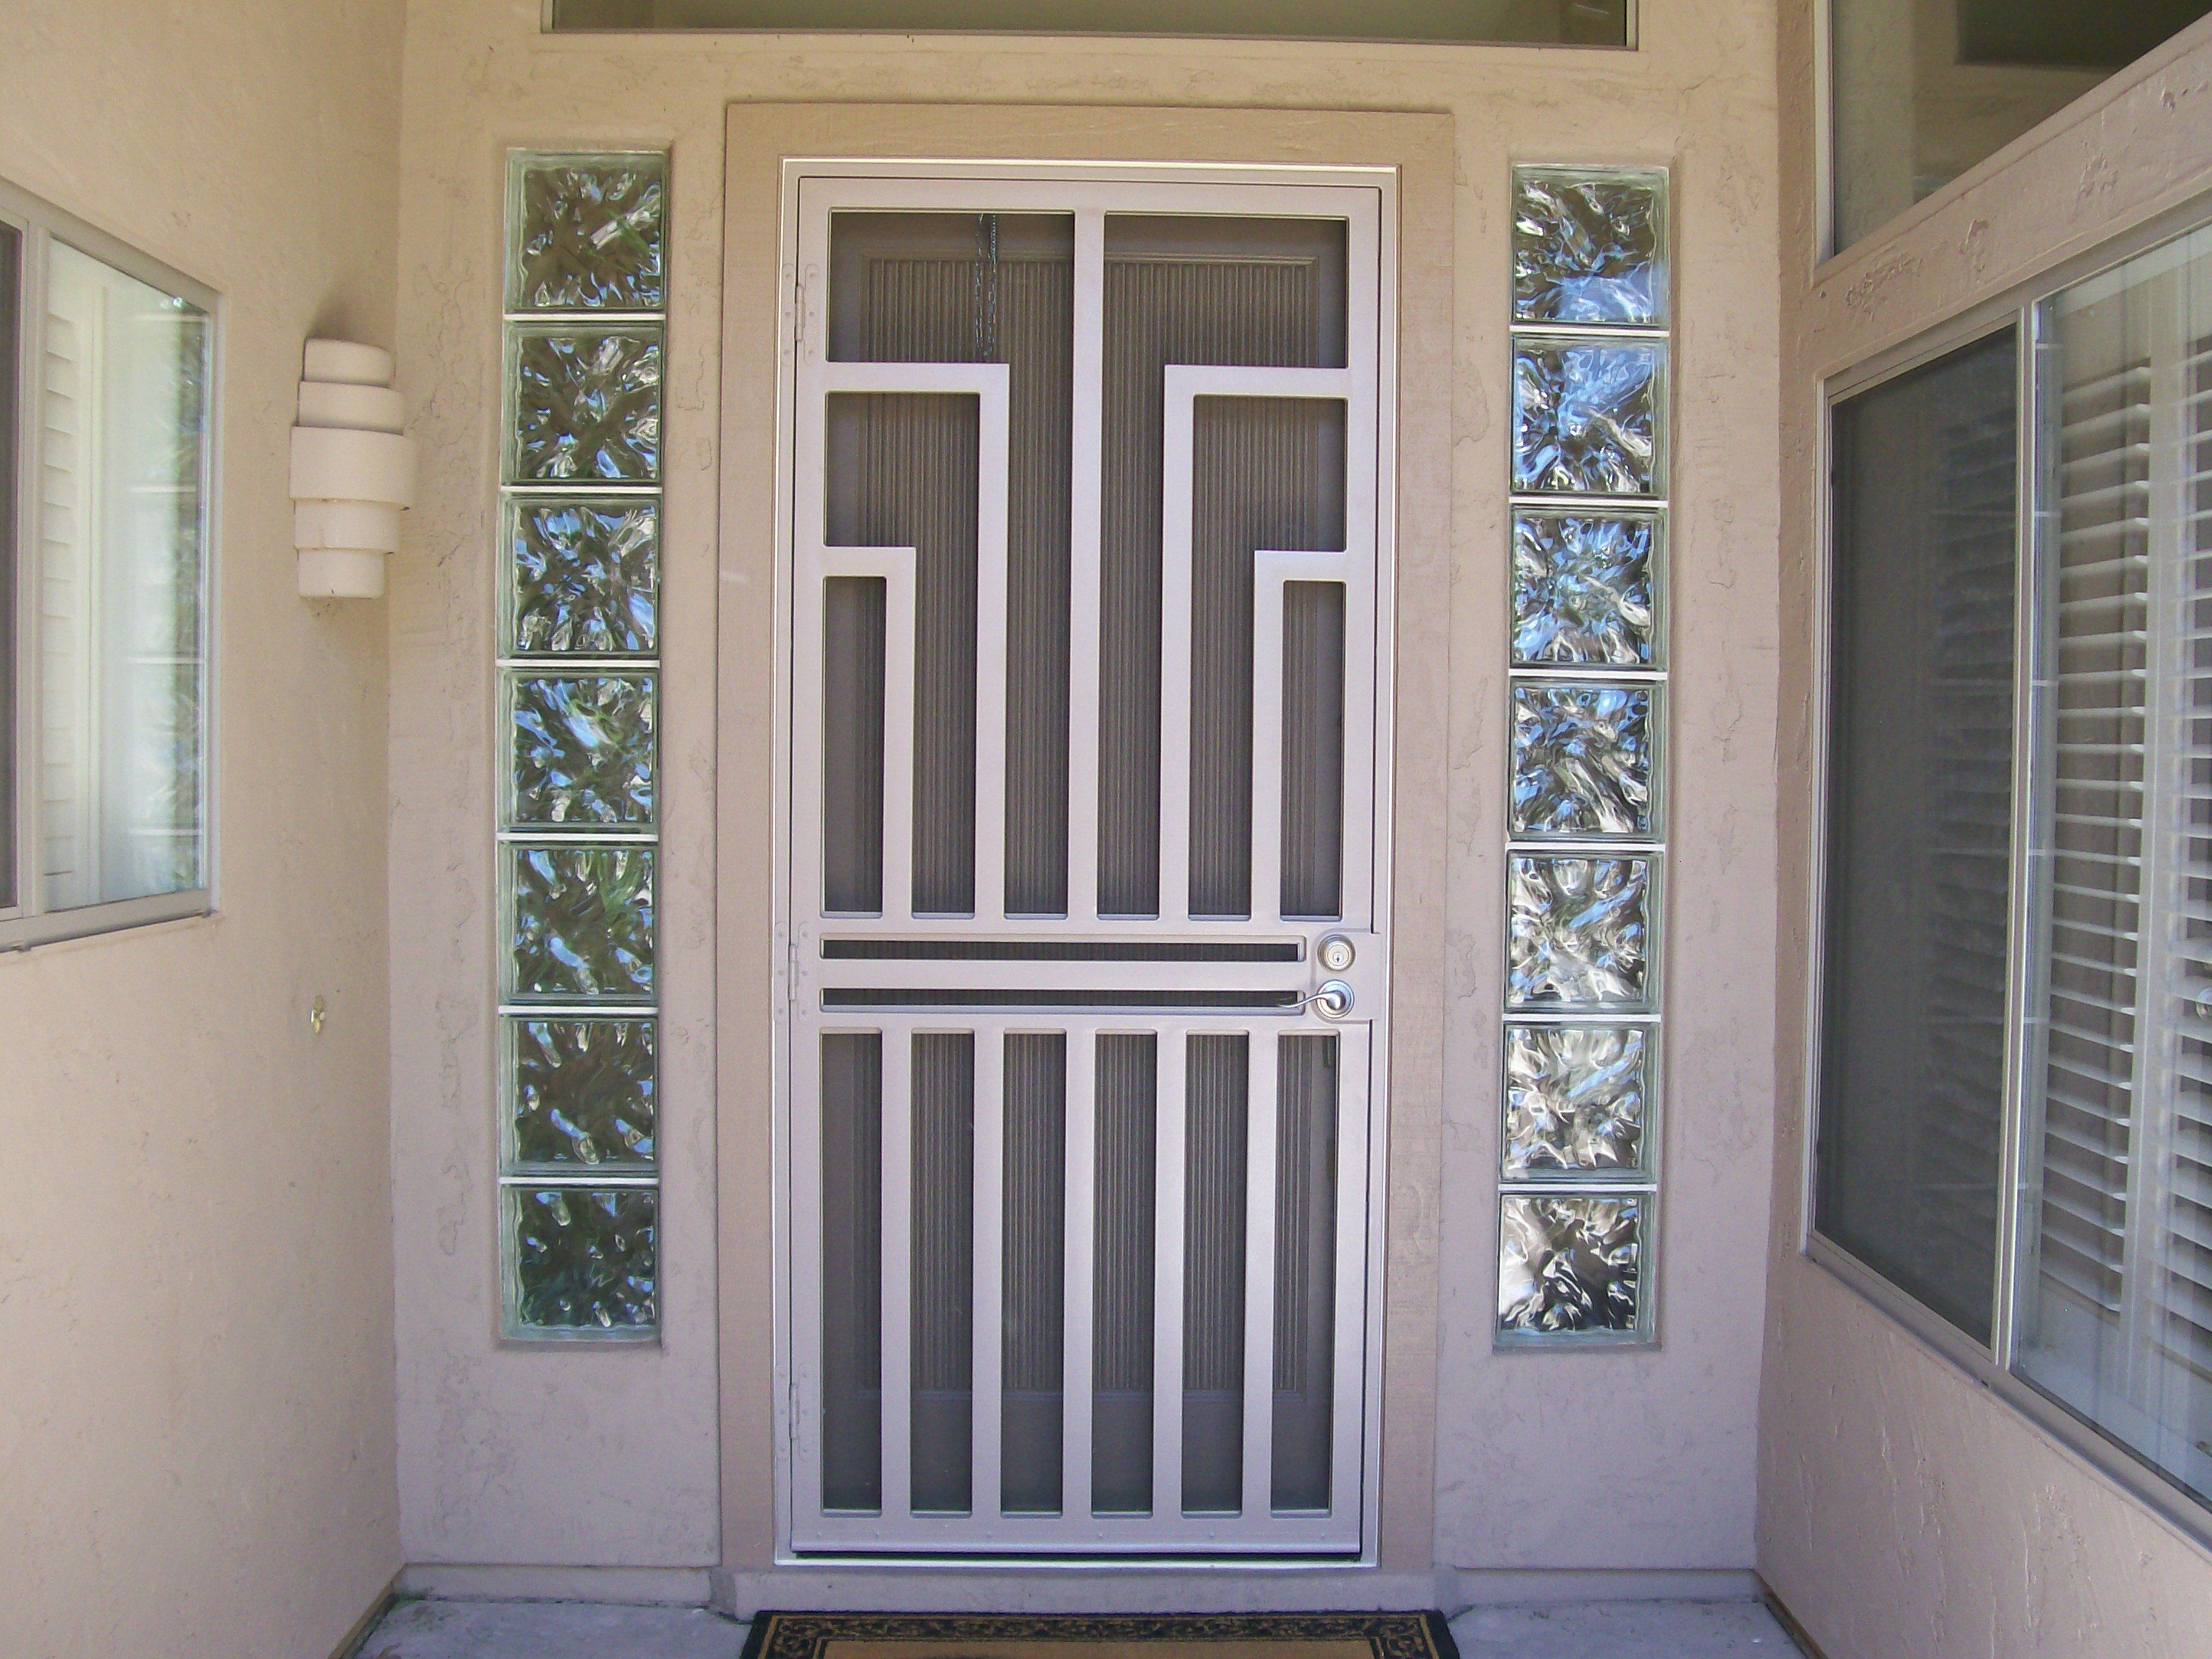 Aluminum Security Screen Door security screen door. #dcsindustries #securityscreendoor